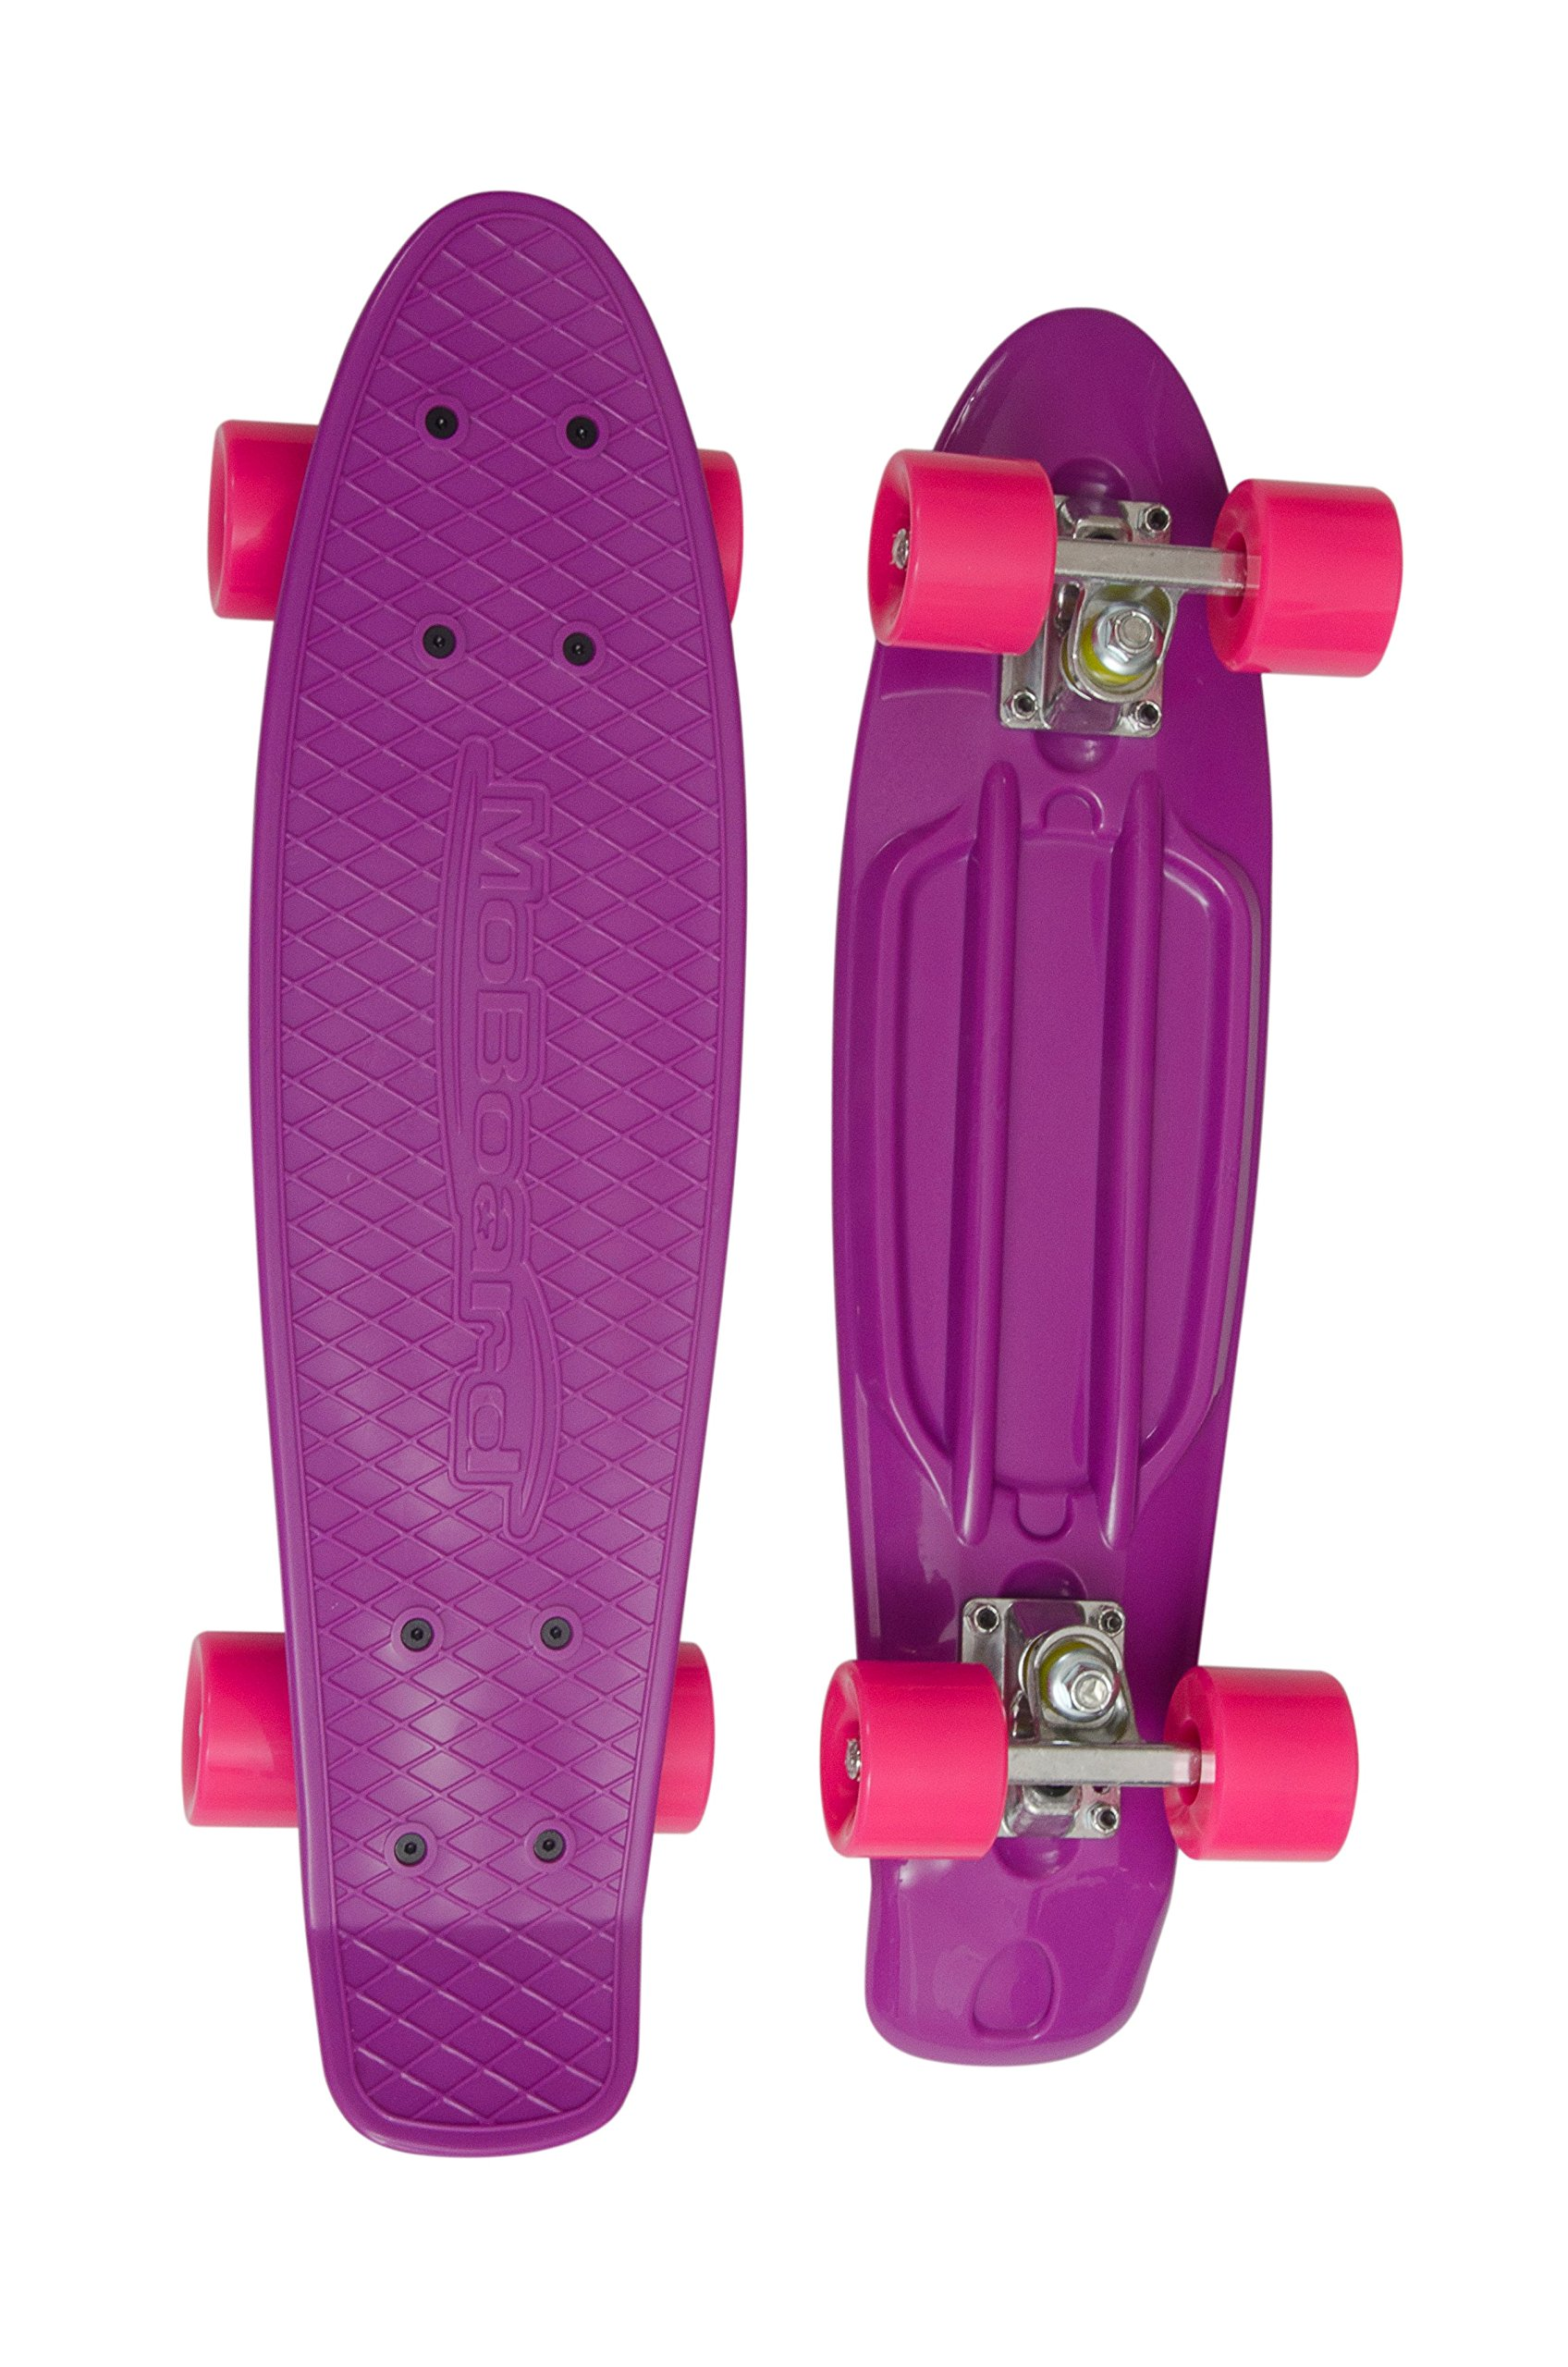 MoBoard Graphic Complete Skateboard | Pro/Beginner | 22 inch Vintage Style with Interchangeable Wheels (Purple/Pink) by MoBoard (Image #1)